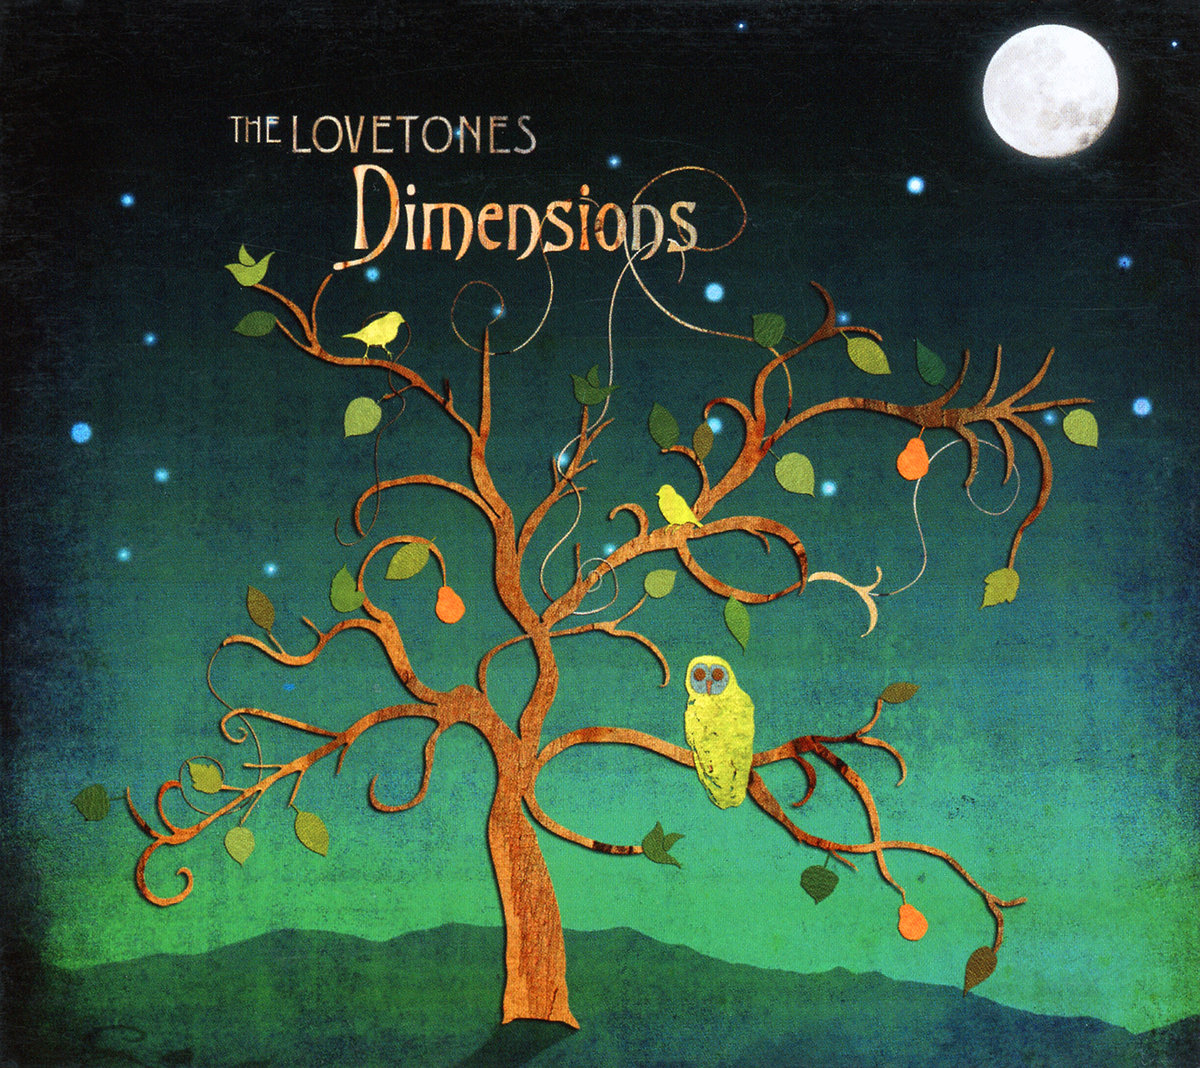 - The LovetonesDimensions - (Album - 2009)Co-producer, engineerChoice cut - A New Low In Getting High